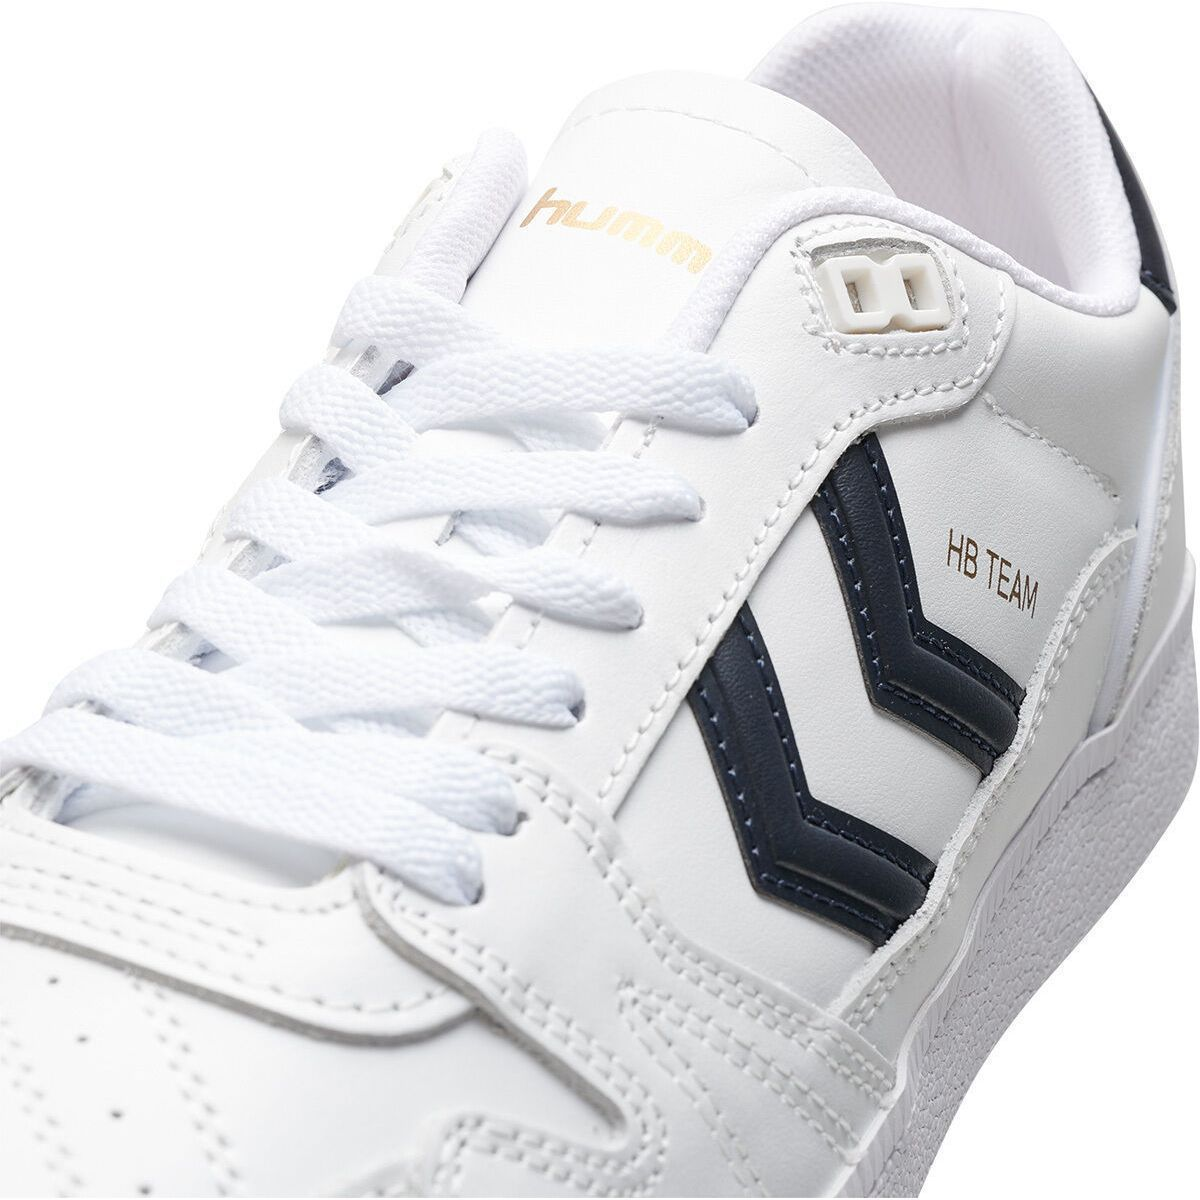 Hummel homme hb team leather blanc1284101_4